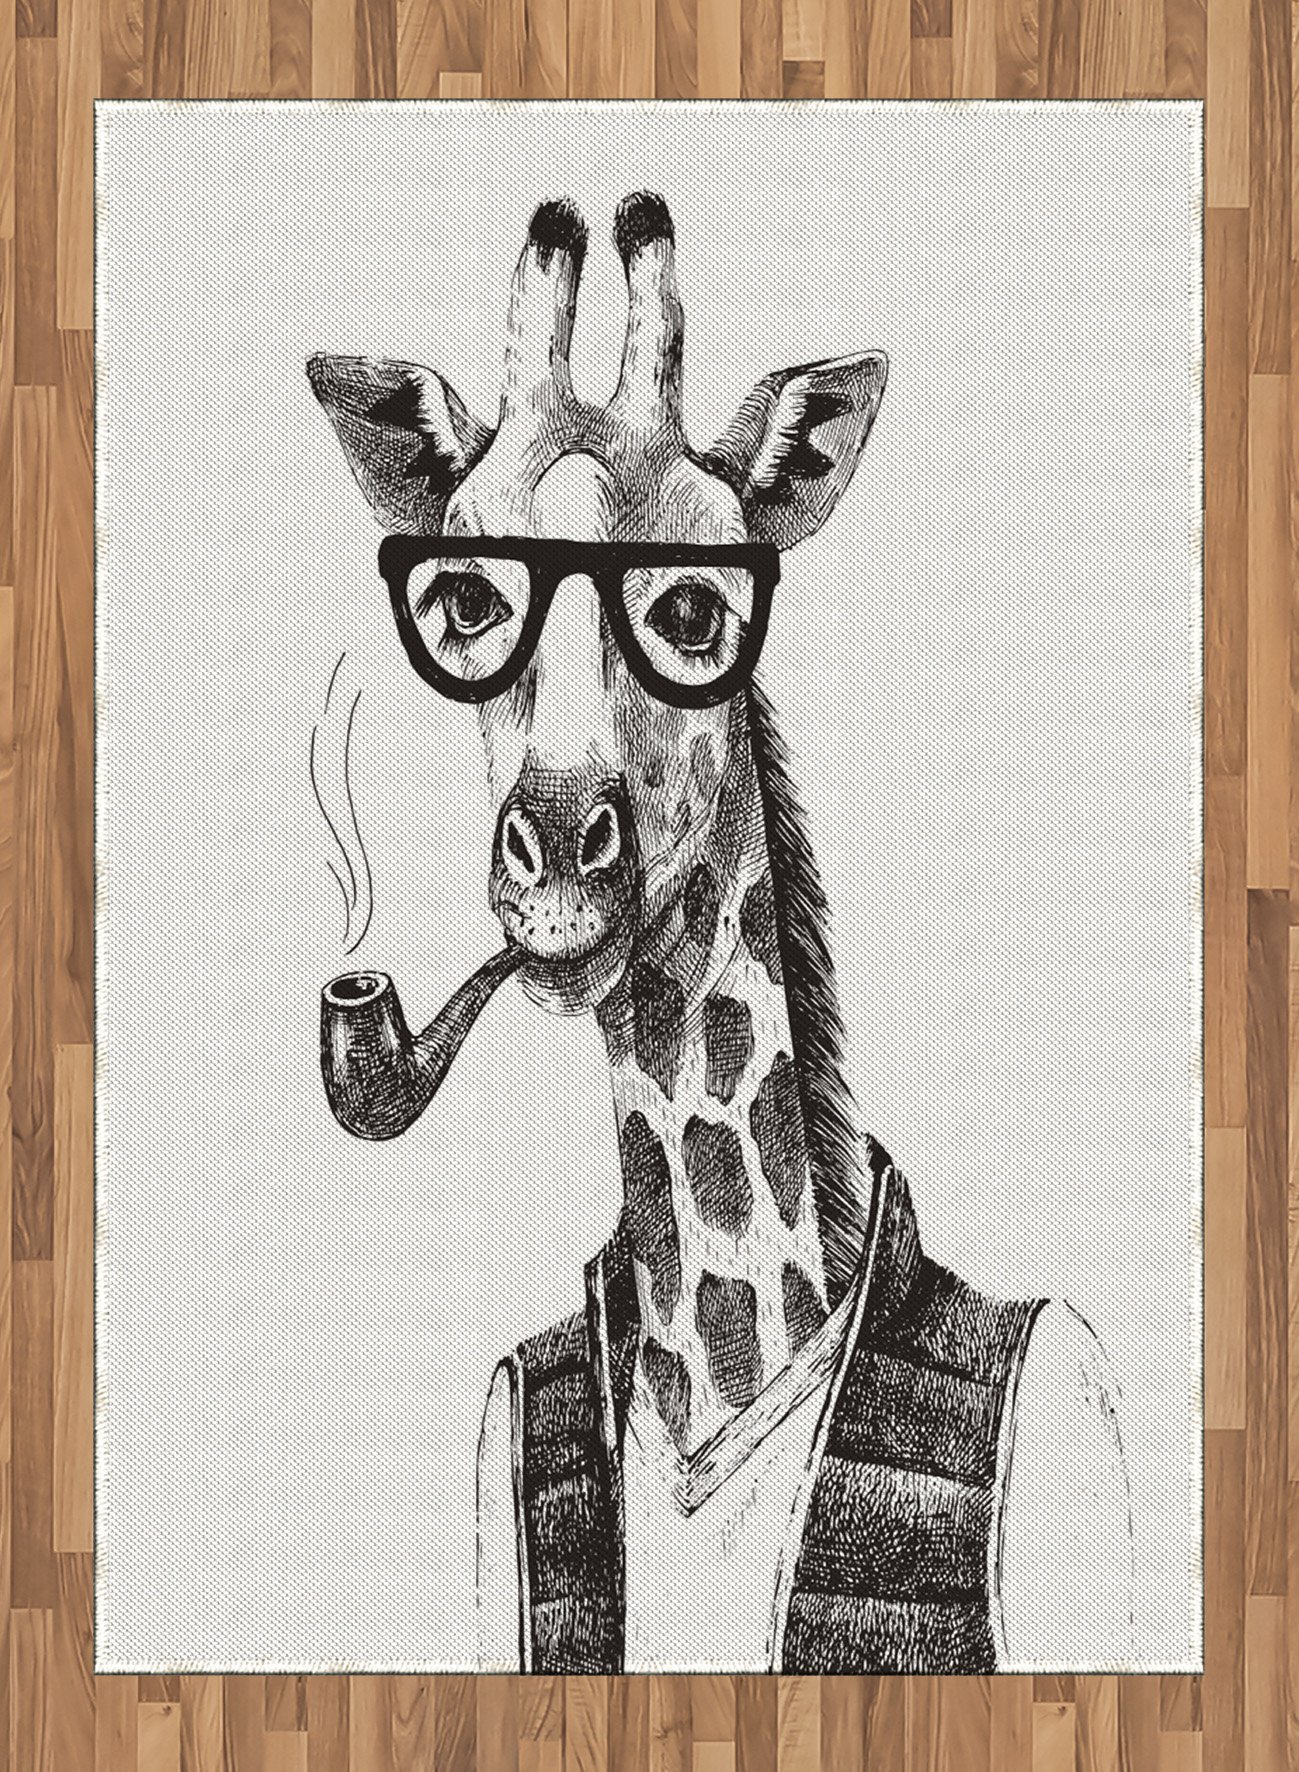 Quirky Area Rug by Lunarable, Giraffe Smoking Pipe Dressed Up Fancy Zoo Animal Fun Hipster Style Drawing, Flat Woven Accent Rug for Living Room Bedroom Dining Room, 5.2 x 7.5 FT, Charcoal Grey White